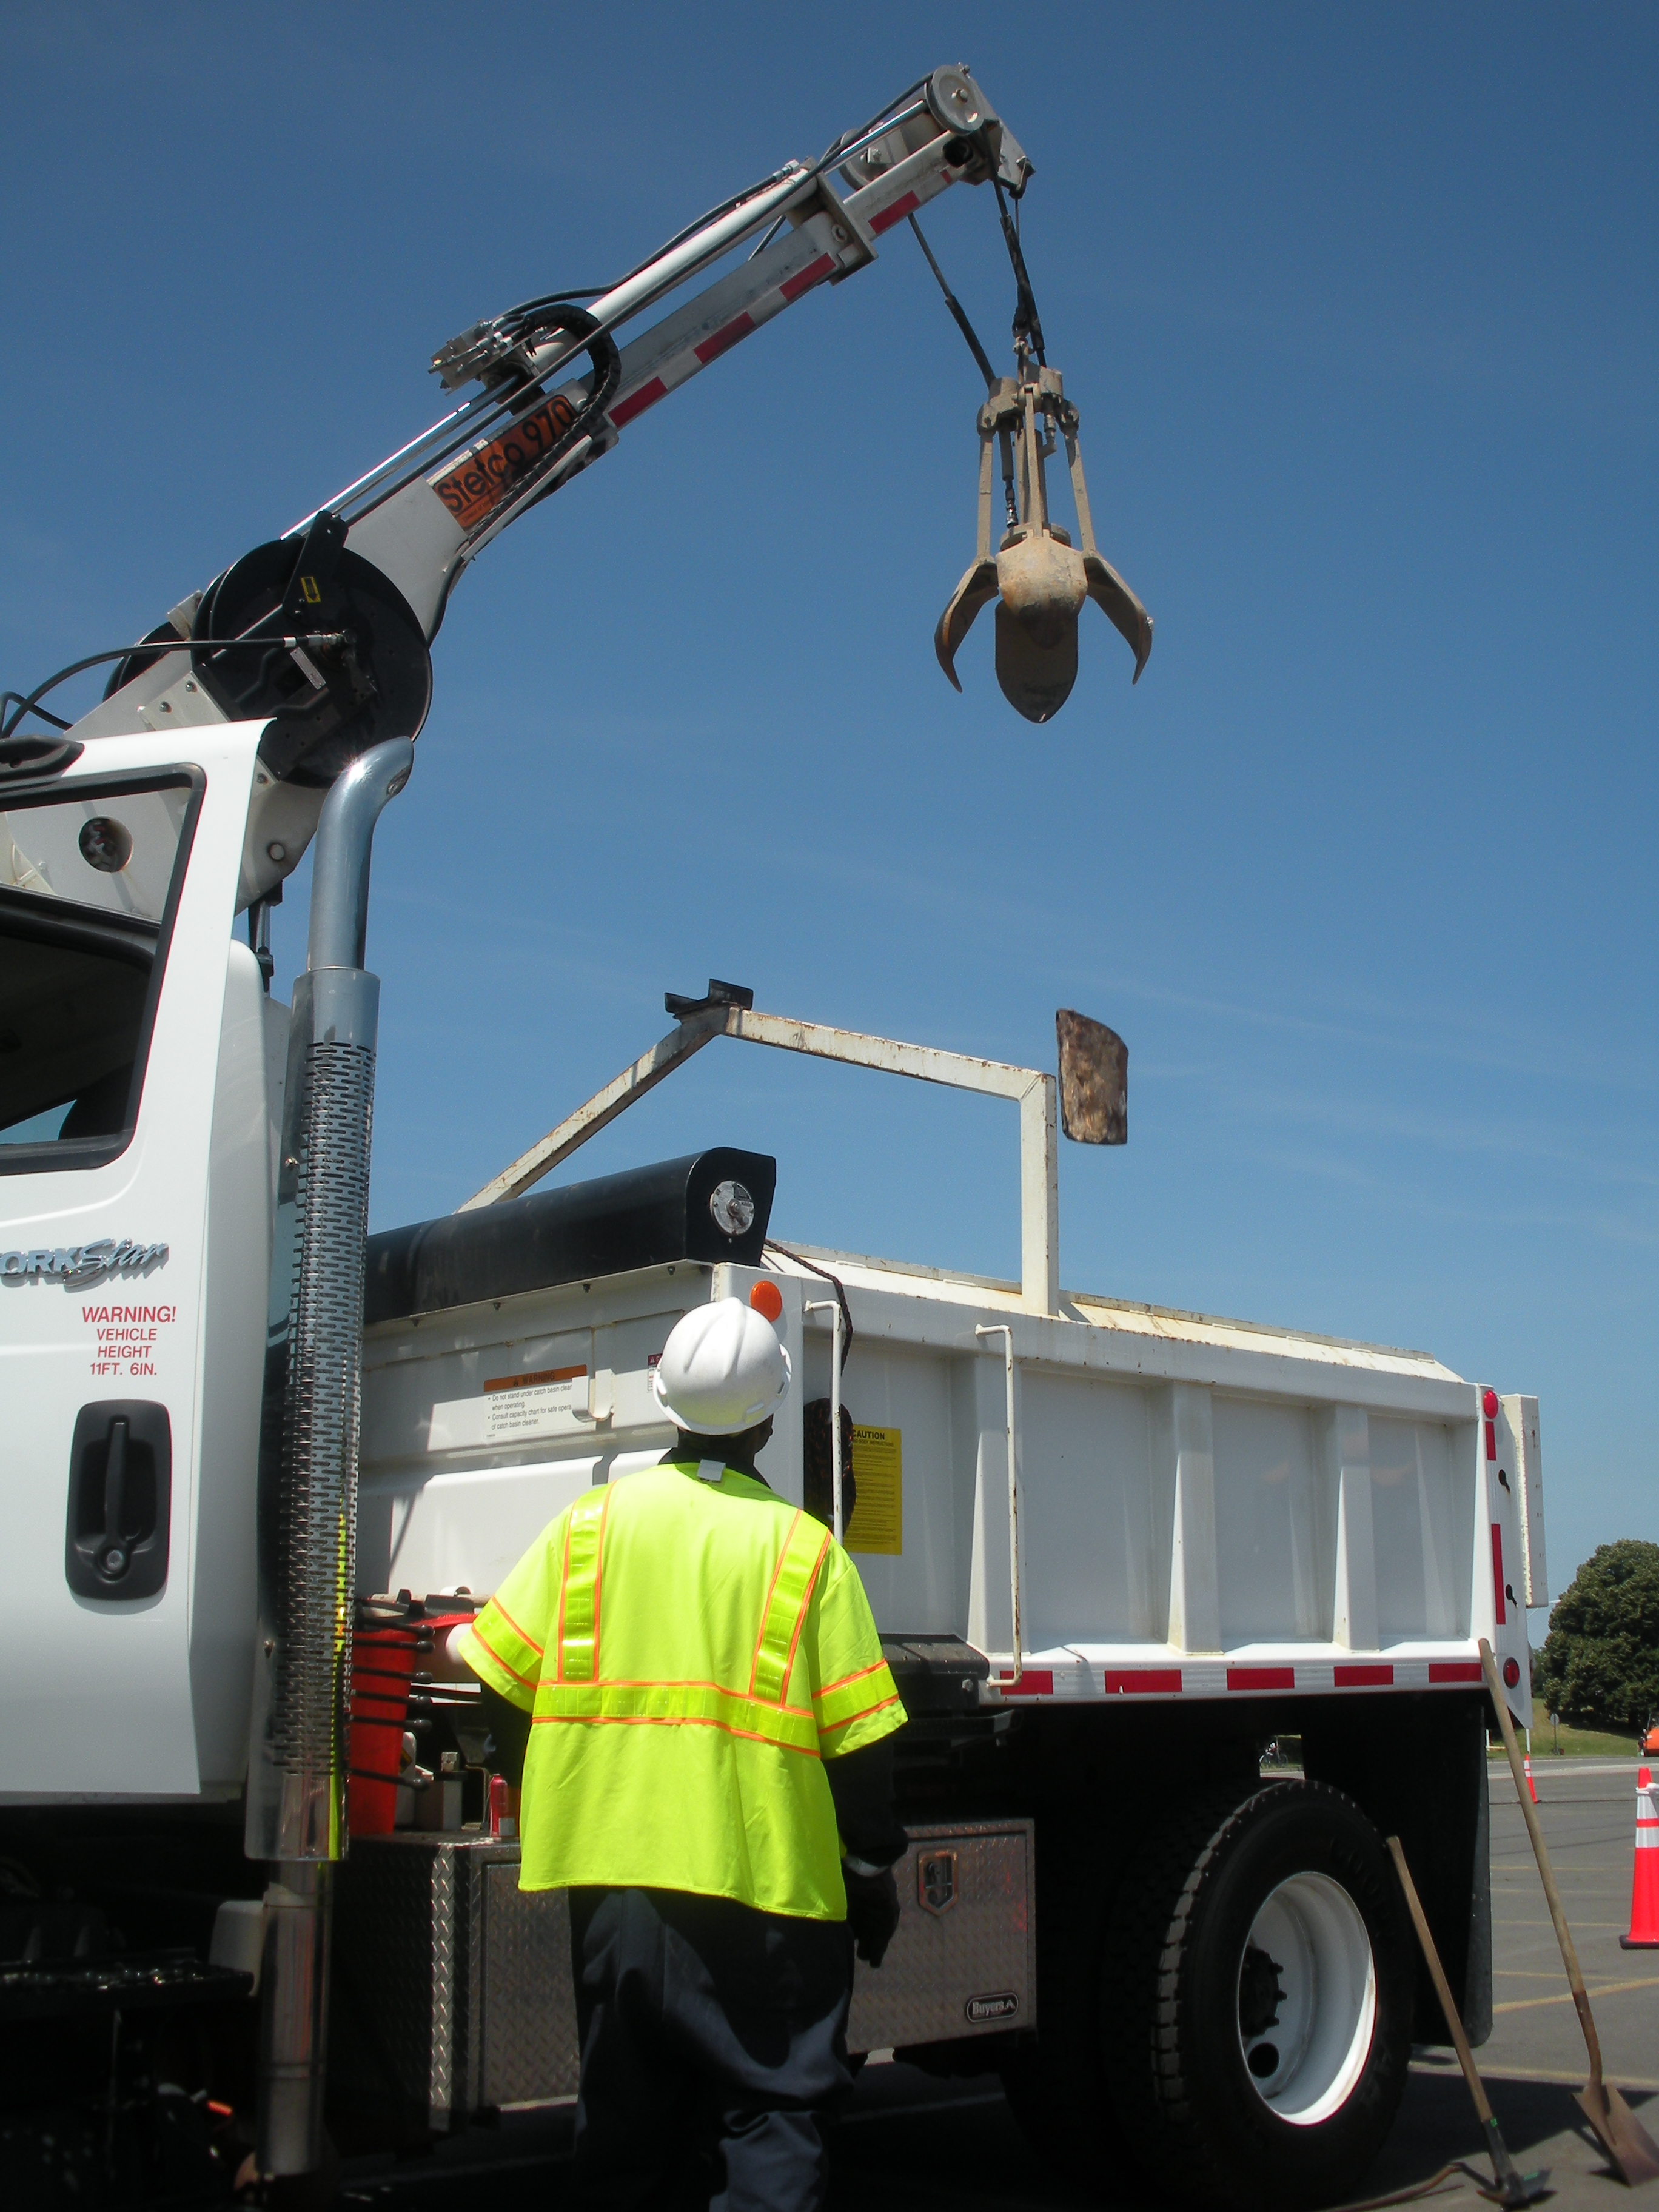 Catch Basins Mid Atlantic Litter Cleanup Service